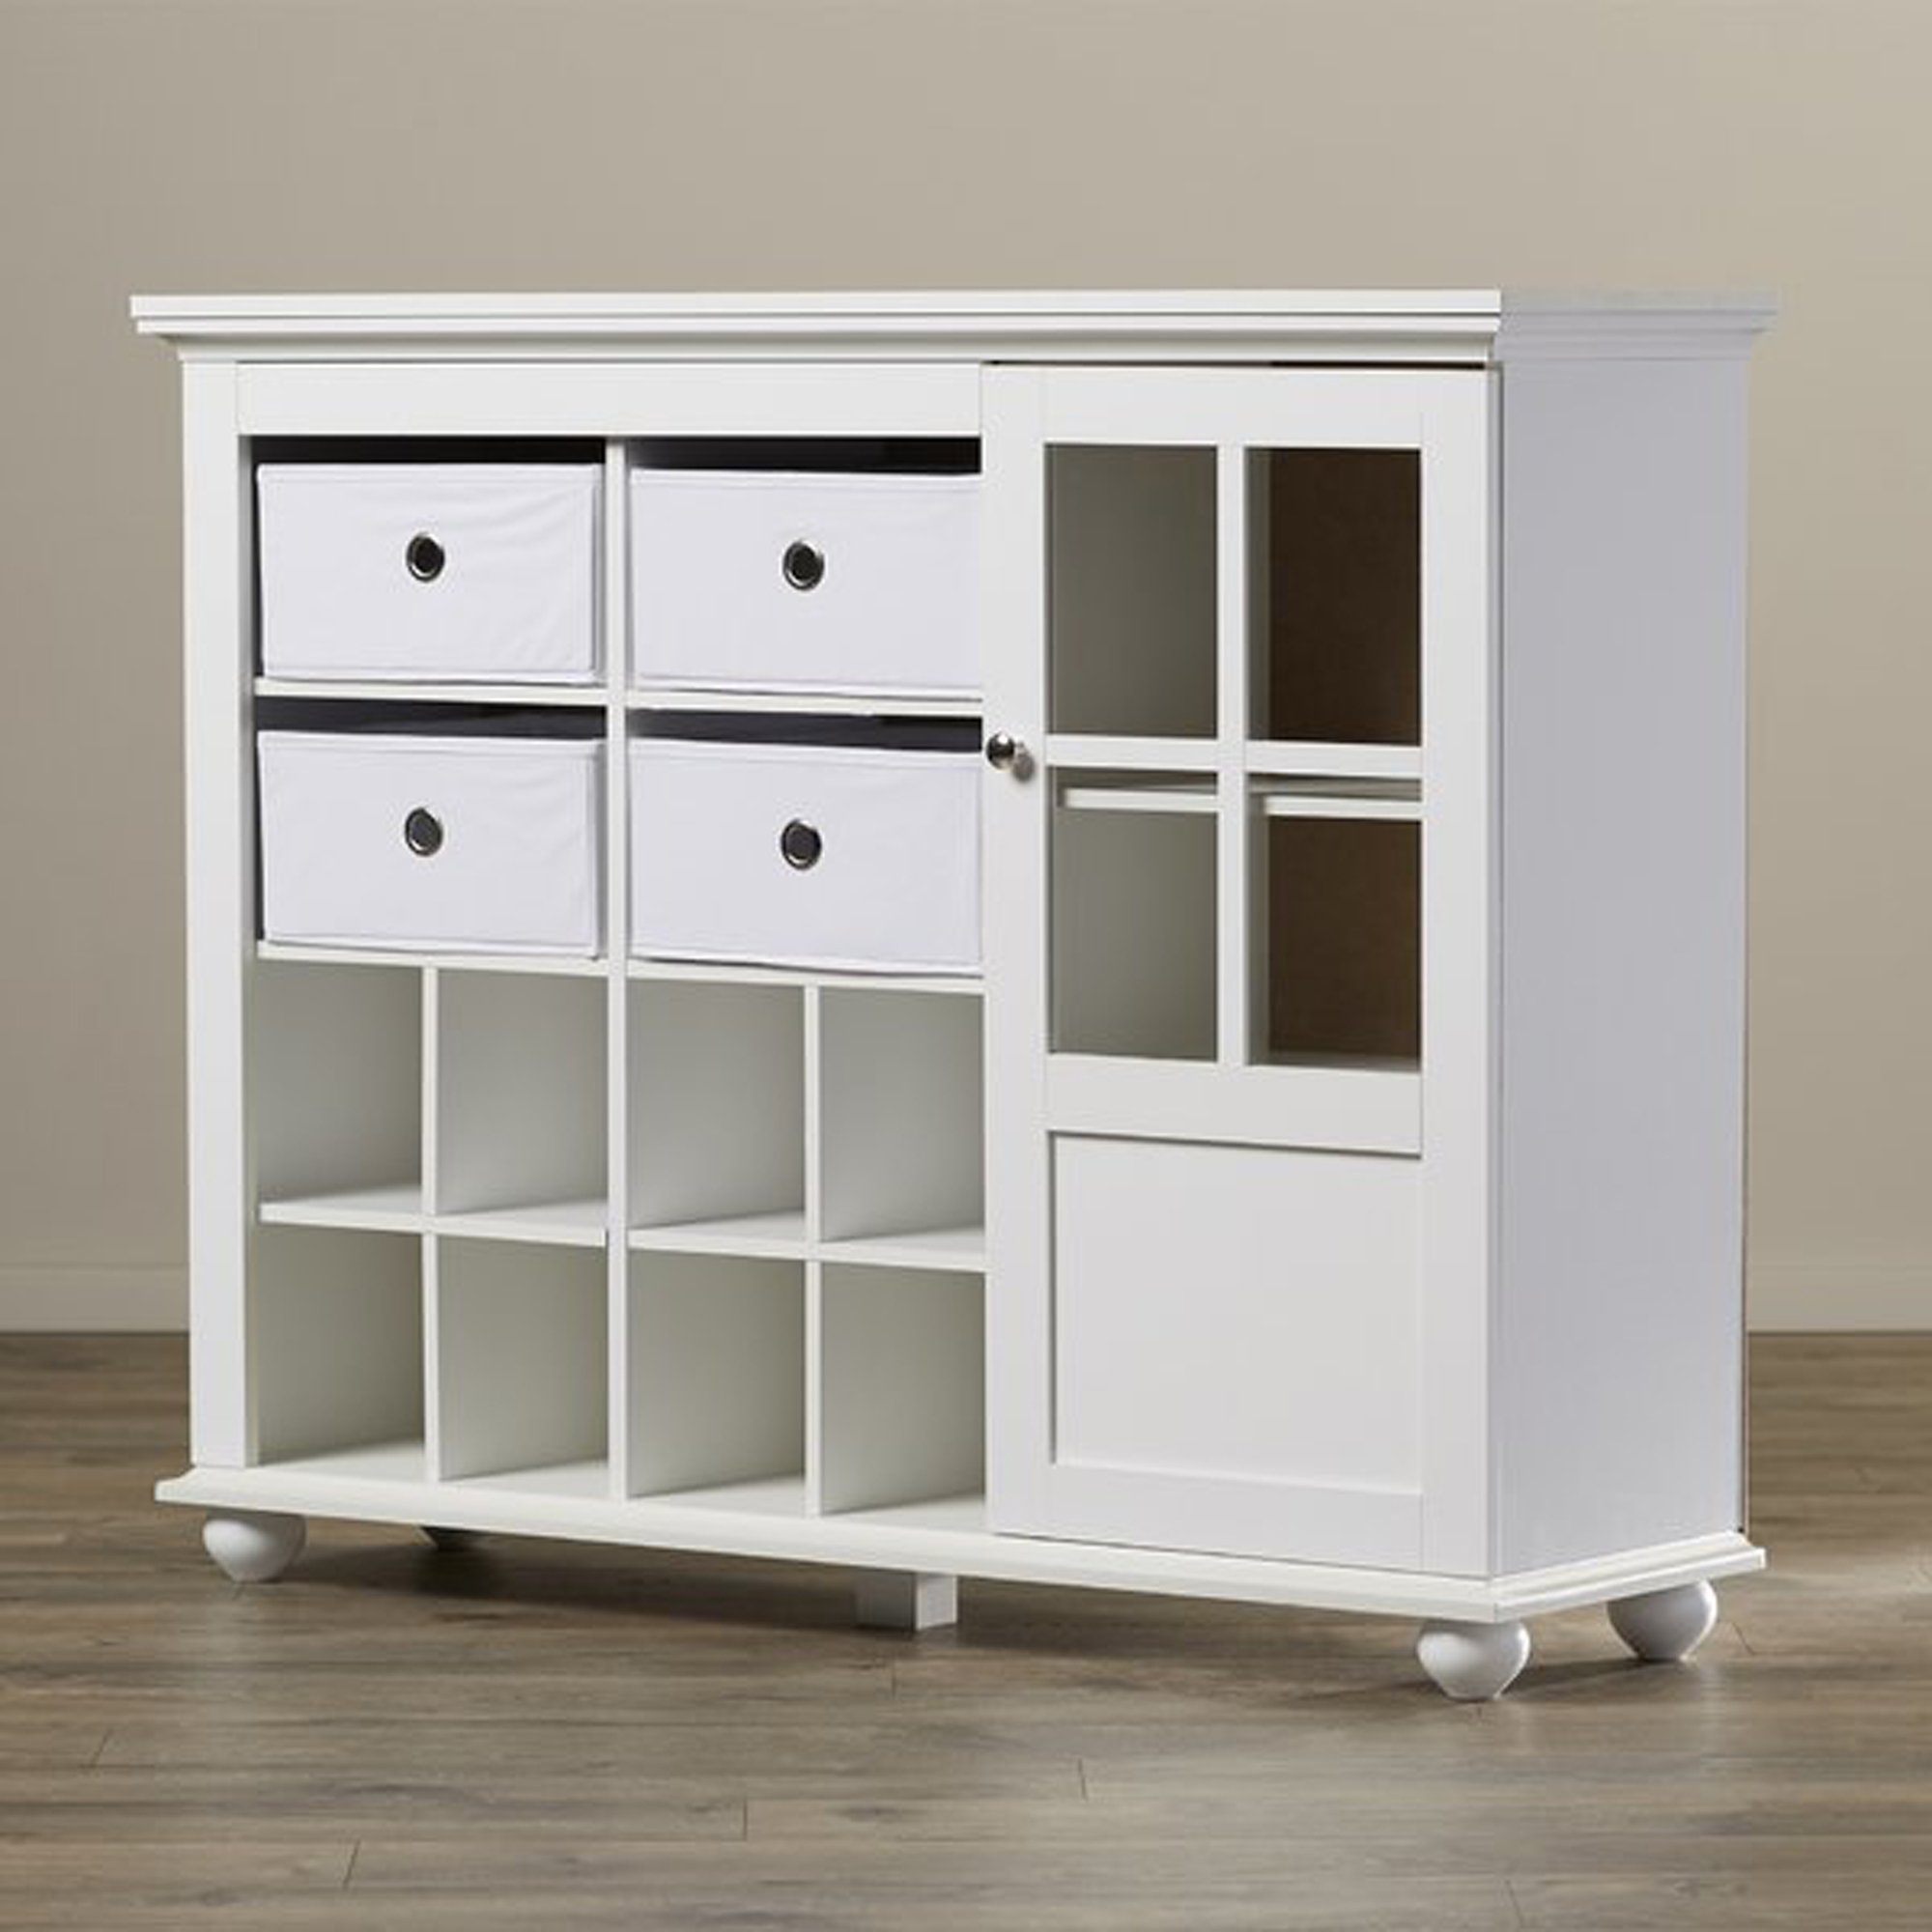 Modern White Cabinet With Bins - Accent Entryway Storage Organizer with Shoe Holder Cubbies - Hallway Console Table